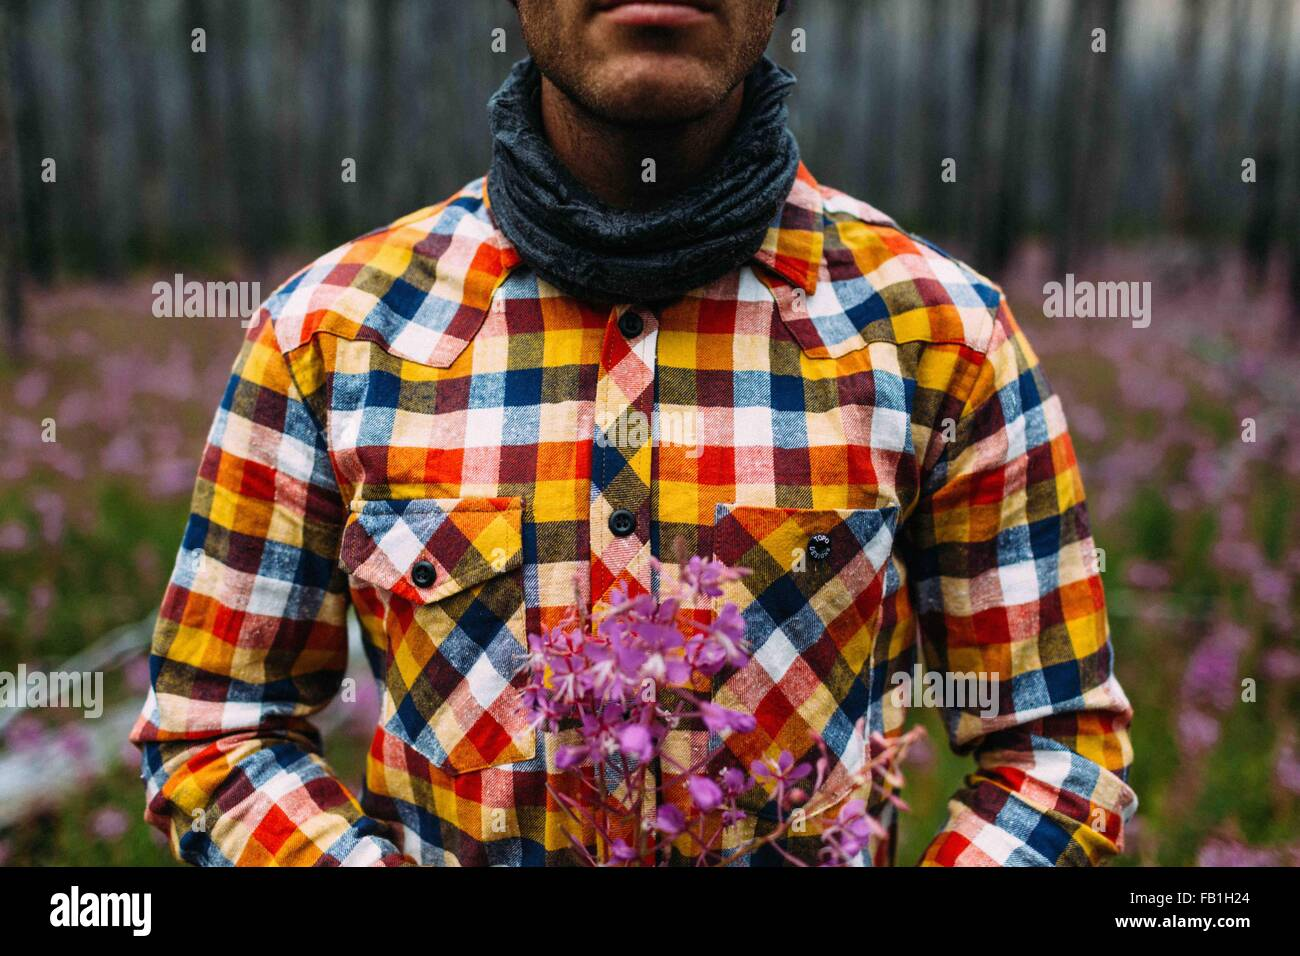 Cropped view of mid adult man wearing checked shirt holding wildflowers, Moraine lake, Banff National Park, Alberta - Stock Image